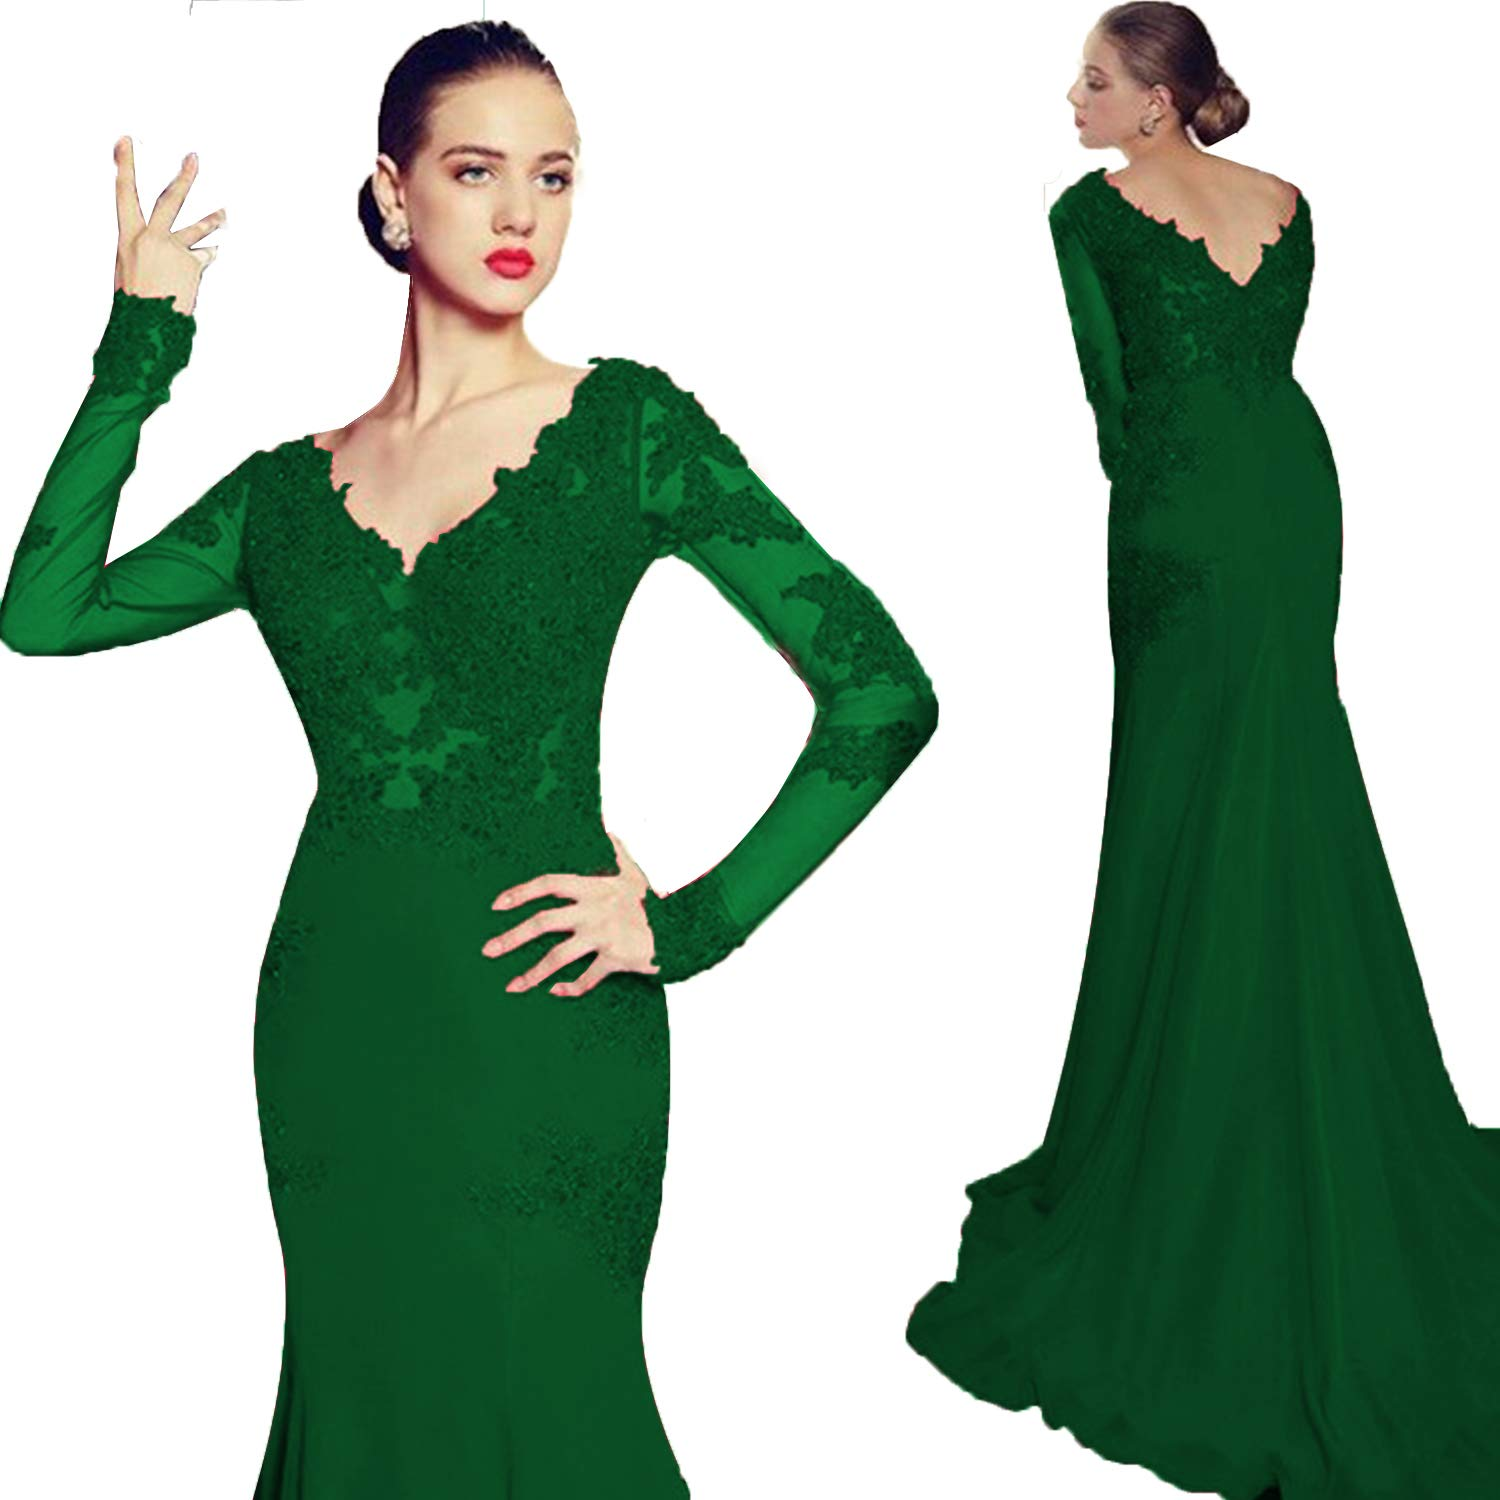 Emerald Green Promworld Women's Double V Neck Lace Applique Mermaid Prom Dress Illusion Formal Evening Gown with Sleeve with Sleeve